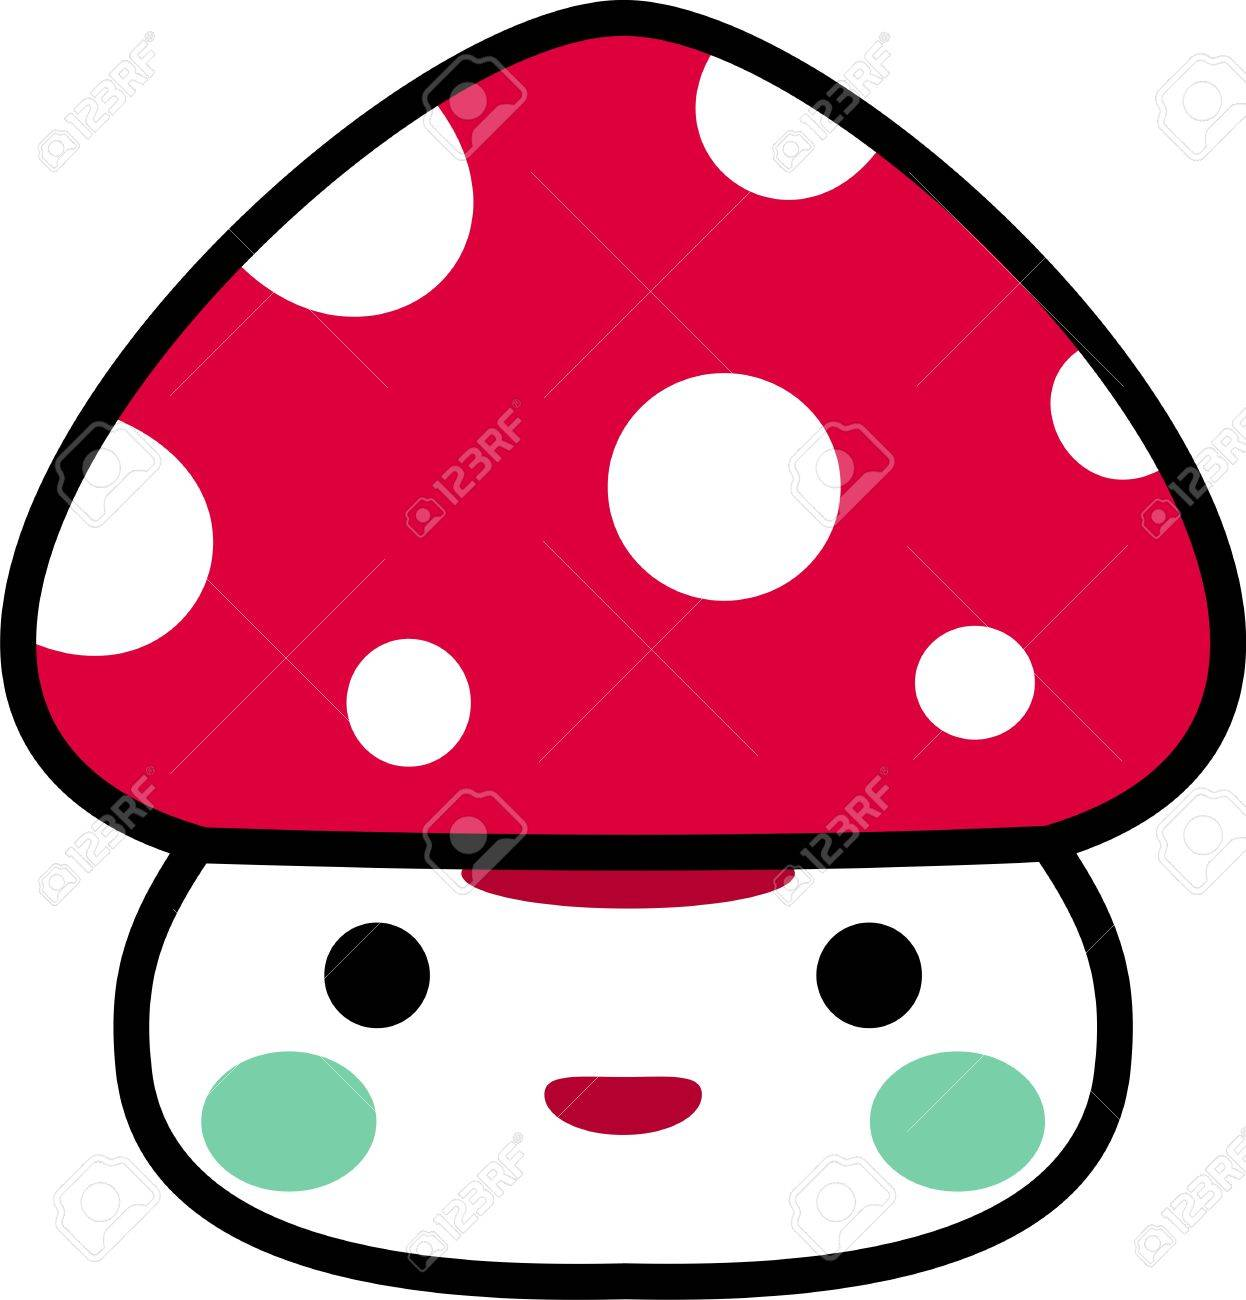 1246x1300 Mushroom Cartoon Pictures Desktop Backgrounds